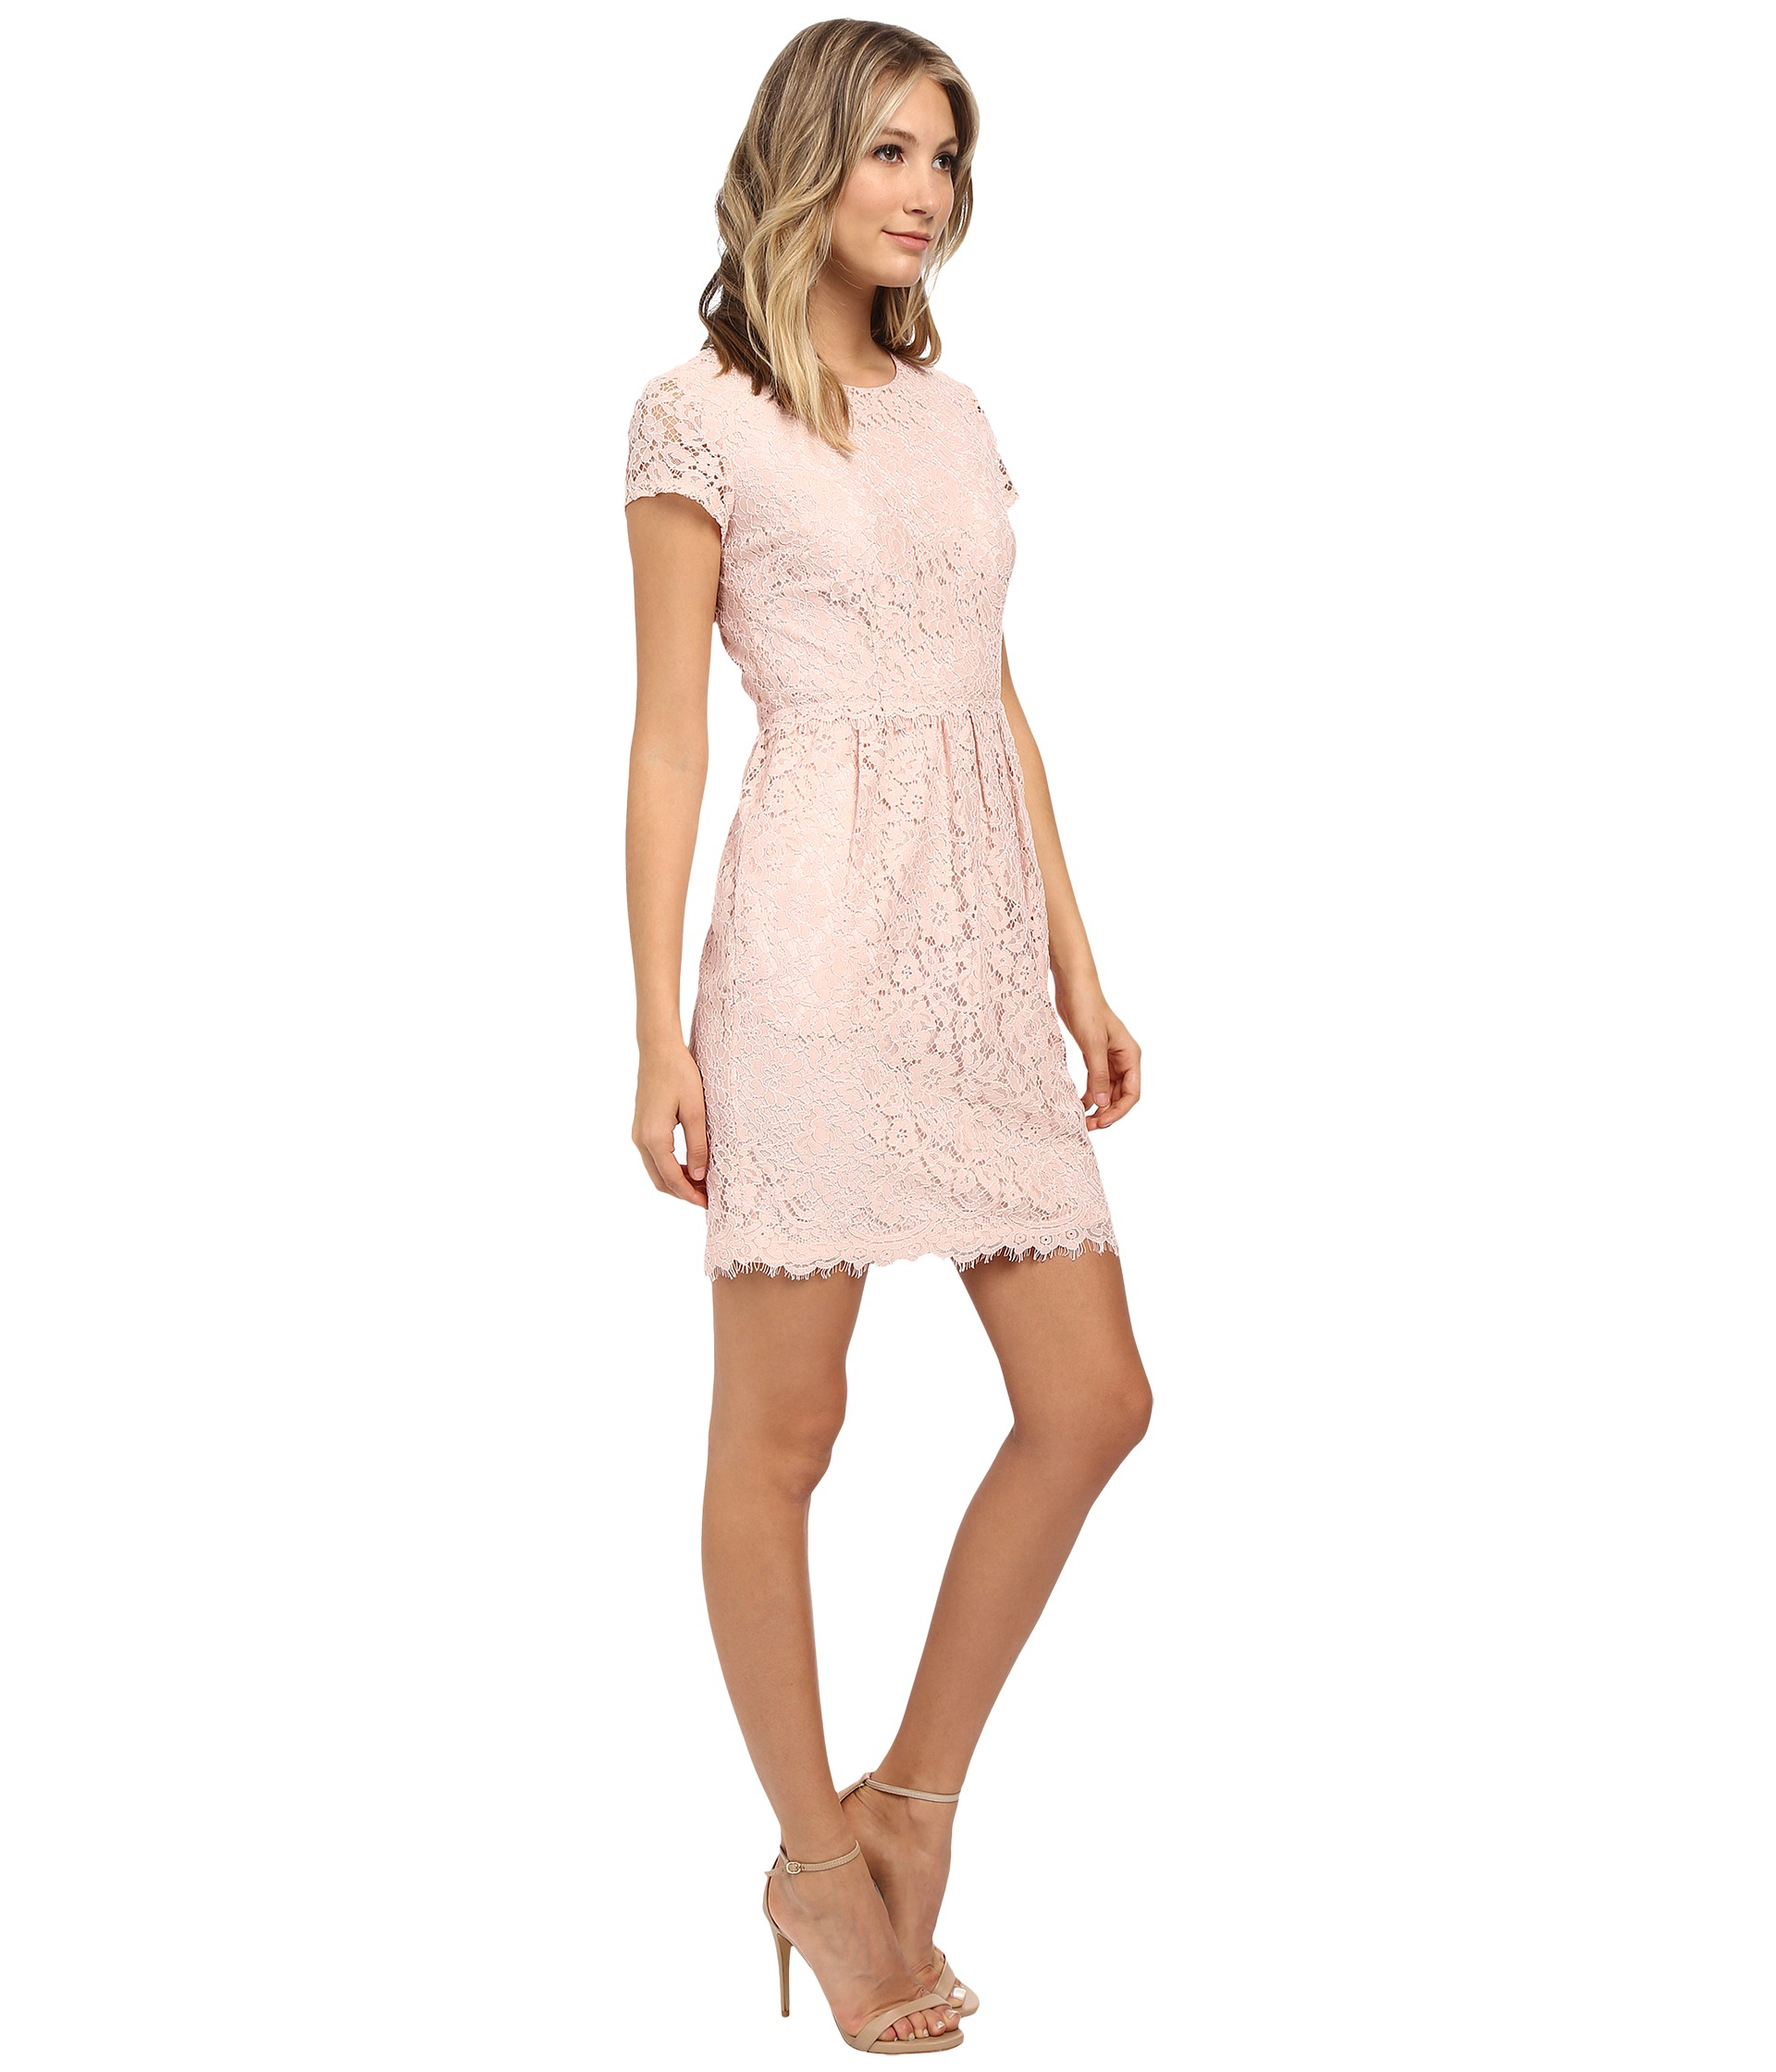 Donna morgan Short Sleeve Lace Dress W/ Rouched Waist in Pink | Lyst